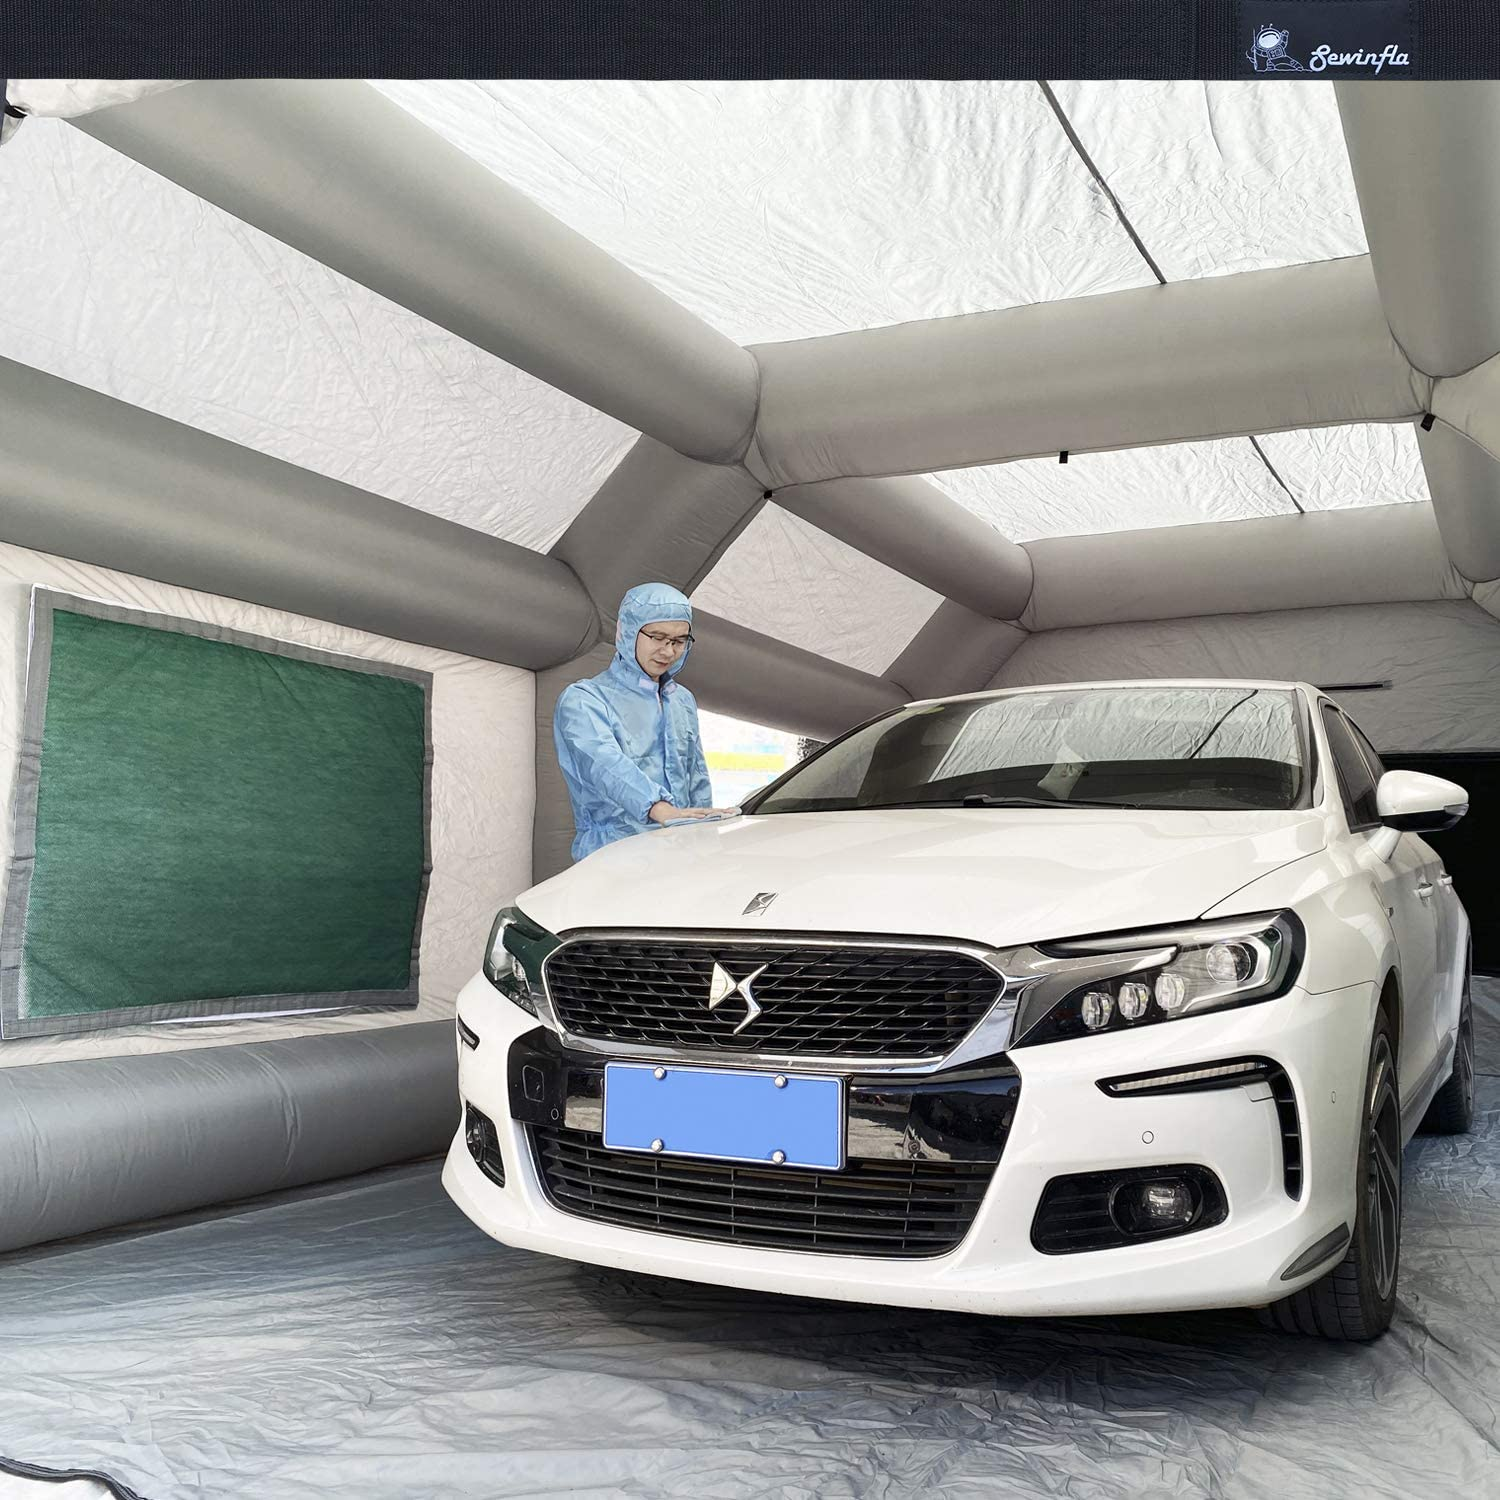 Spray Booth Inflatable Paint Booth SEWINFLA Portable Car Painting Tent with Two Blowers Upgrade Air Filtration System Environment Friendly More Durable 33x16x11Ft Replacement Filters